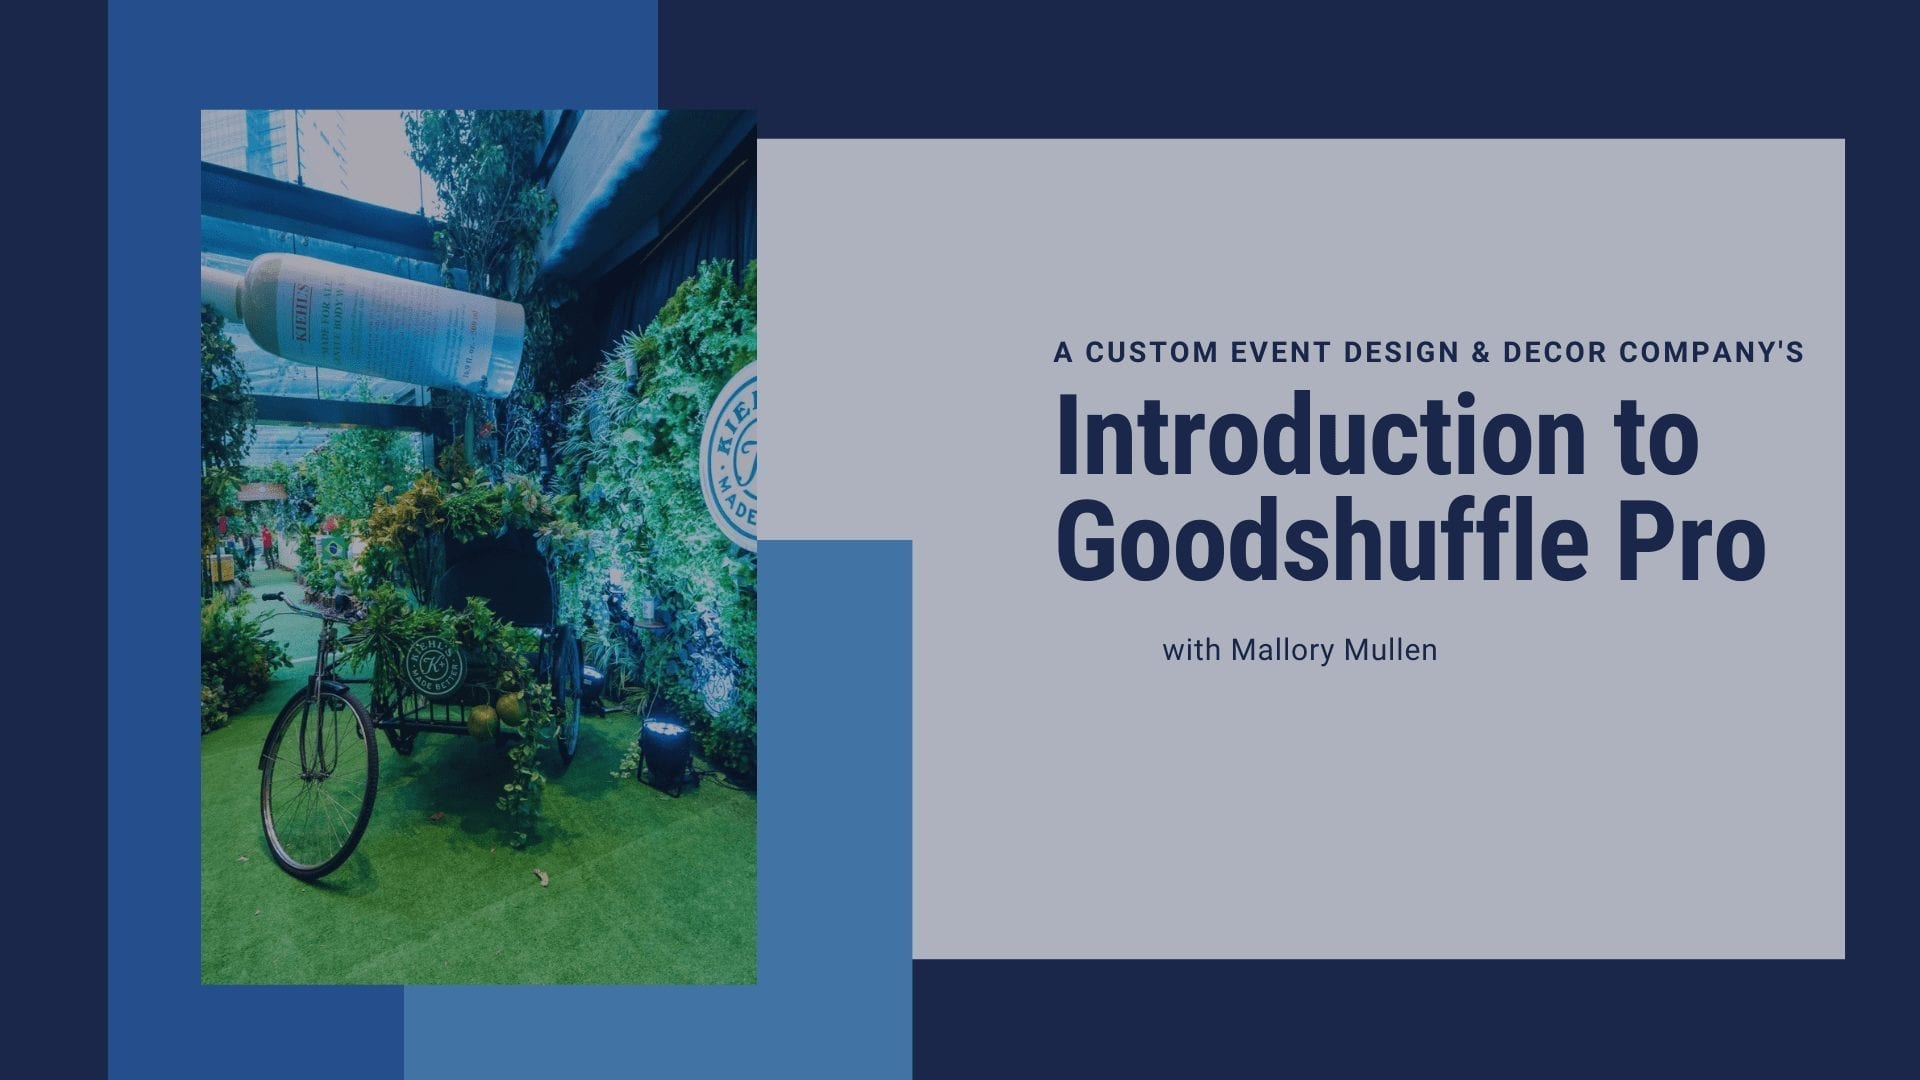 Introduction to Goodshuffle Pro for event design and decor companies